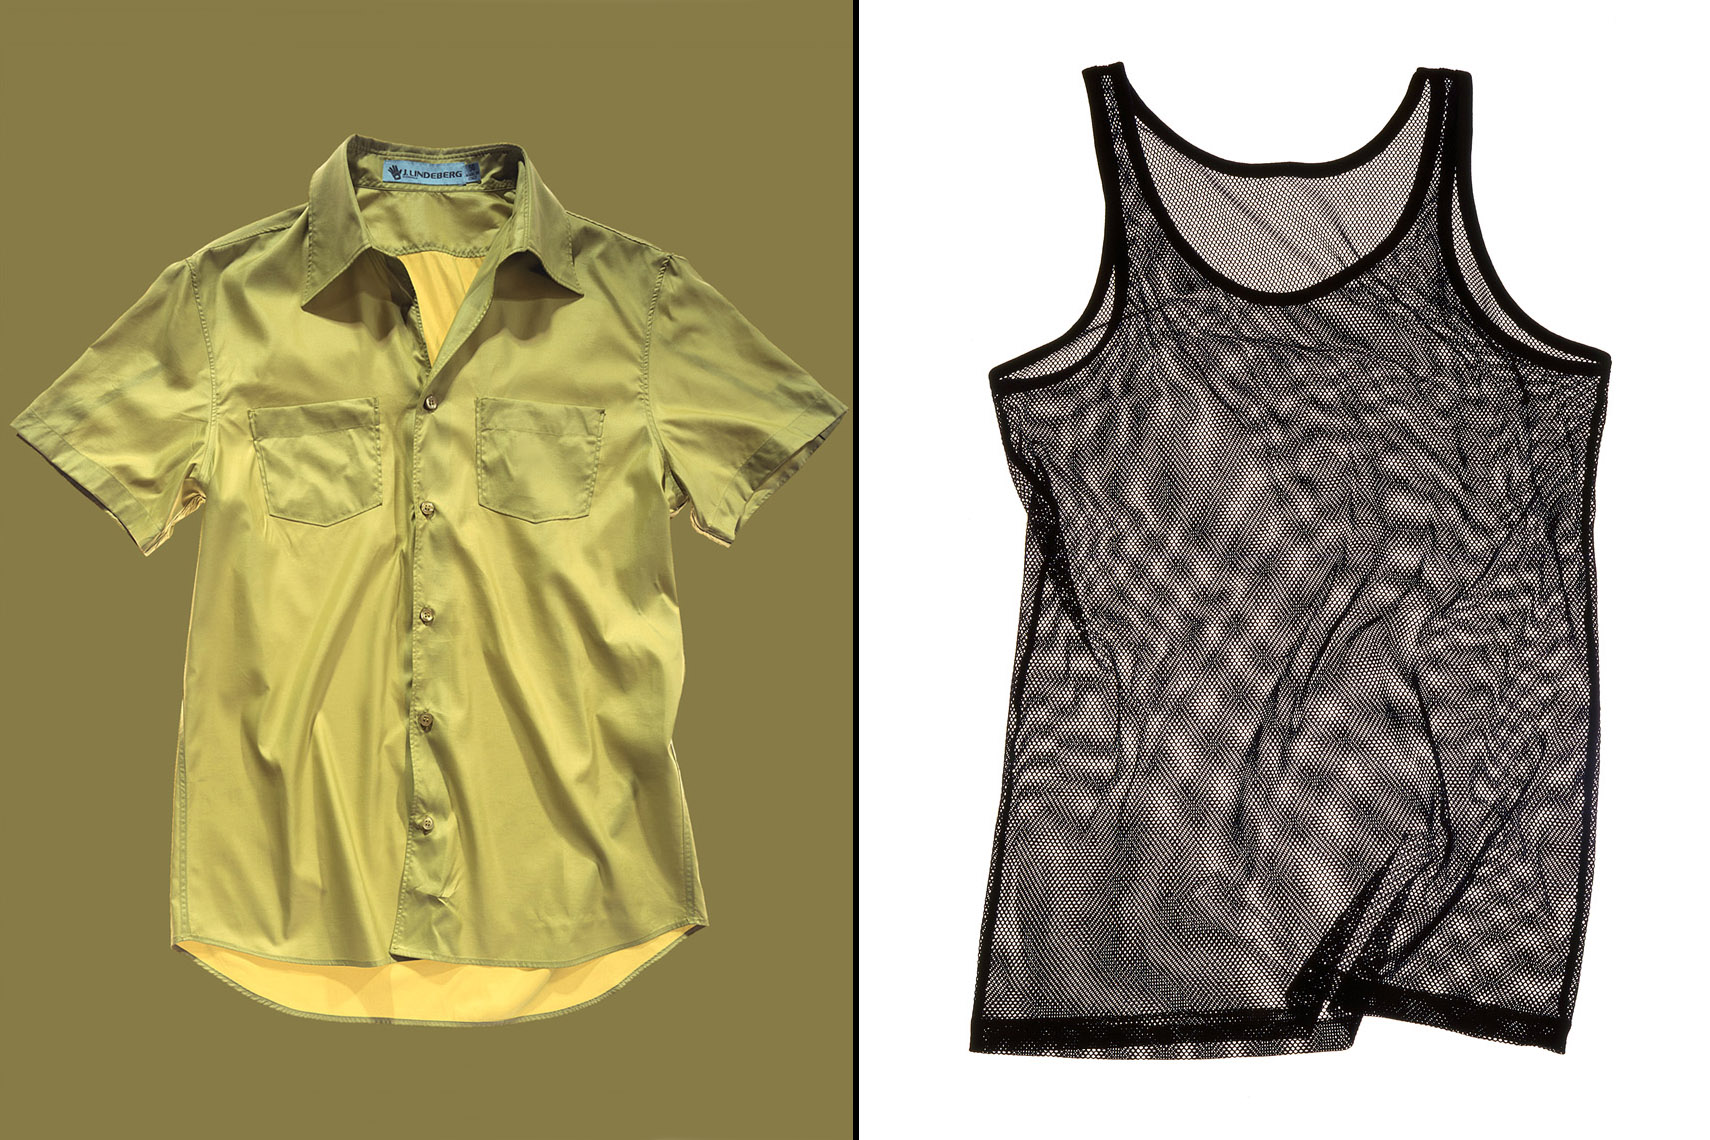 Apparel Still Life, Green Polo Shirt and Mesh Tank Top